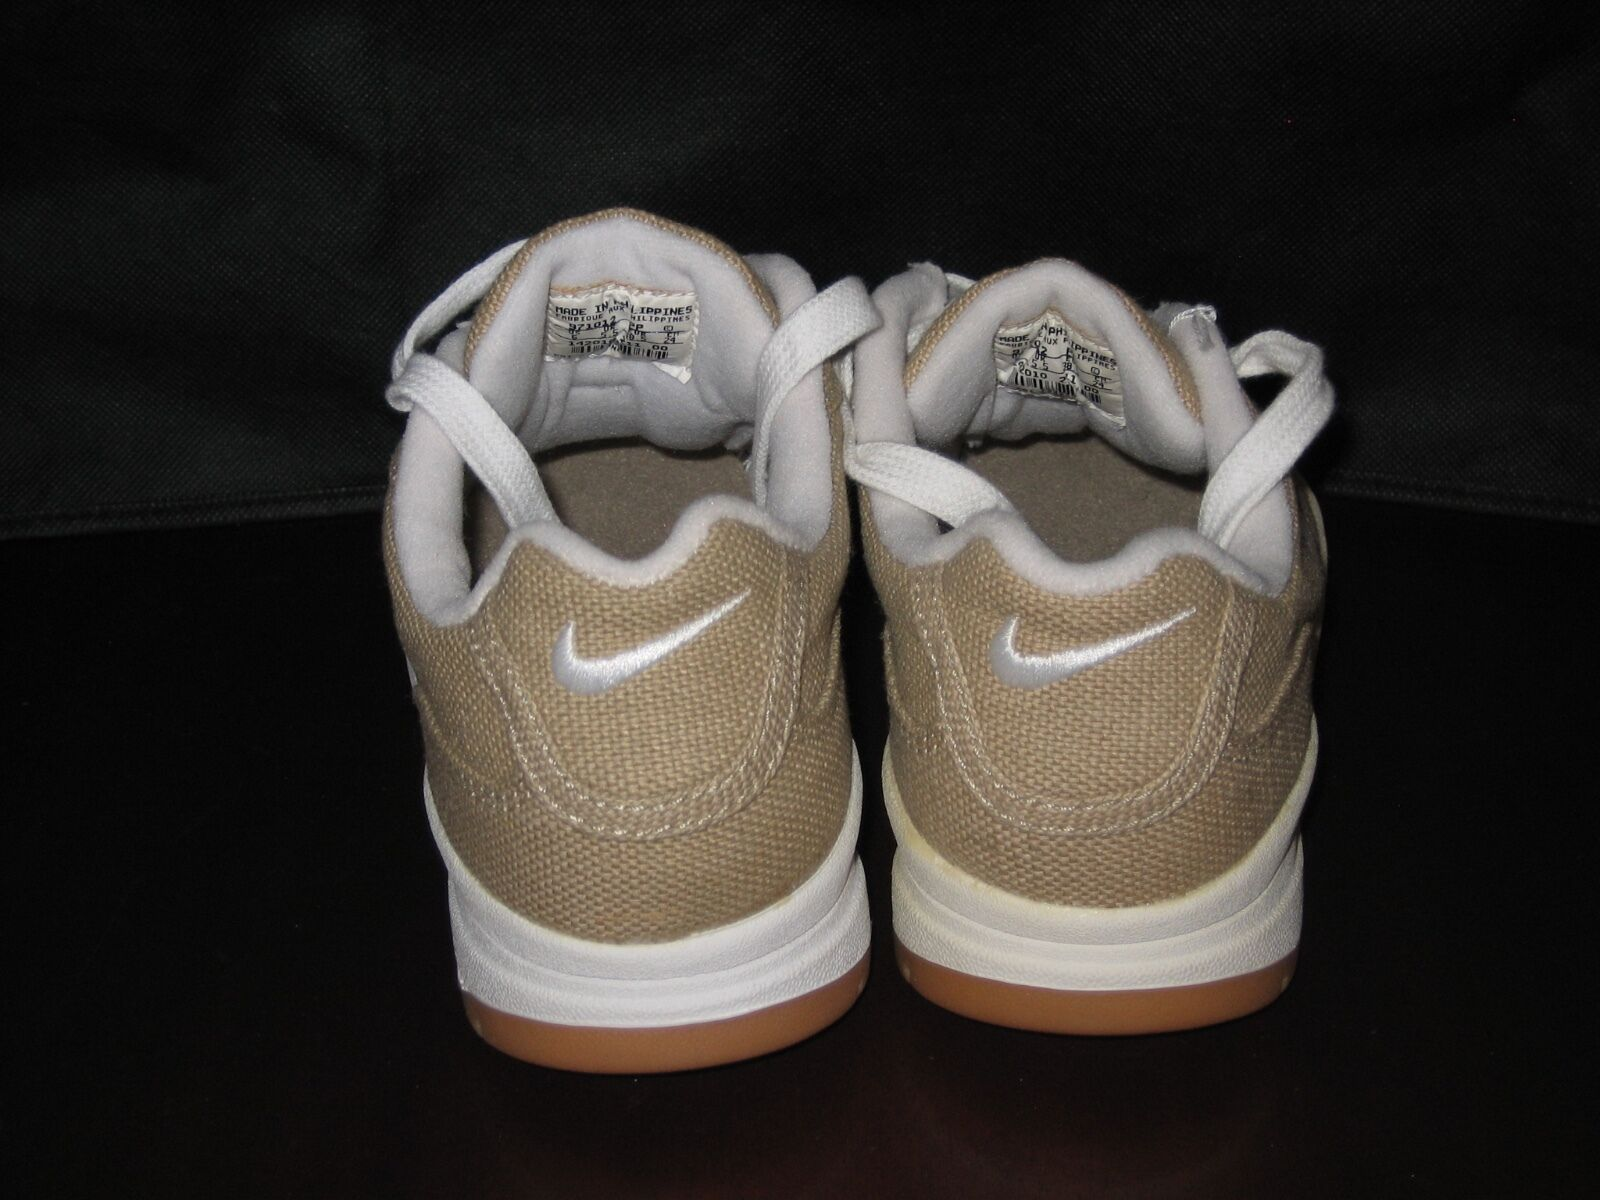 Nike Courtcup '98 '98 '98 USA 6 Canvas NIB NOS vintage ORIGINAL sneakers skate urban air ec801b